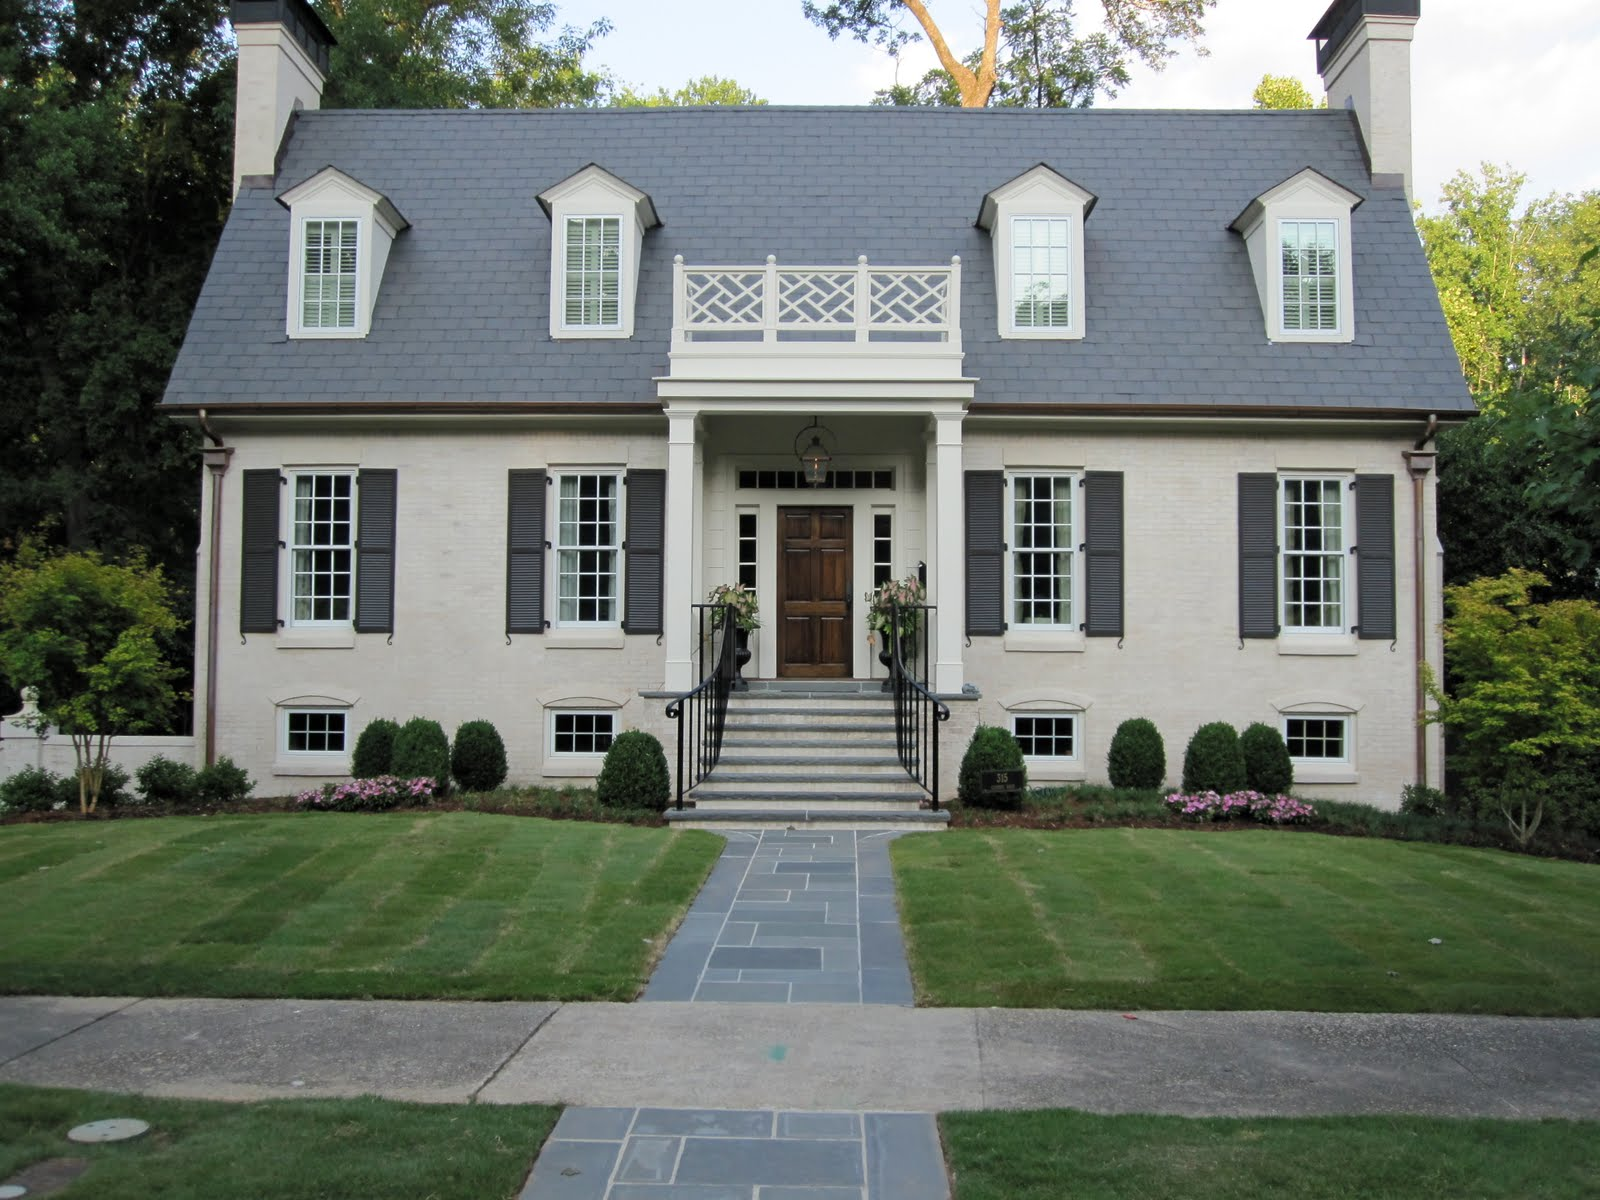 House envy in atl - White exterior masonry paint image ...